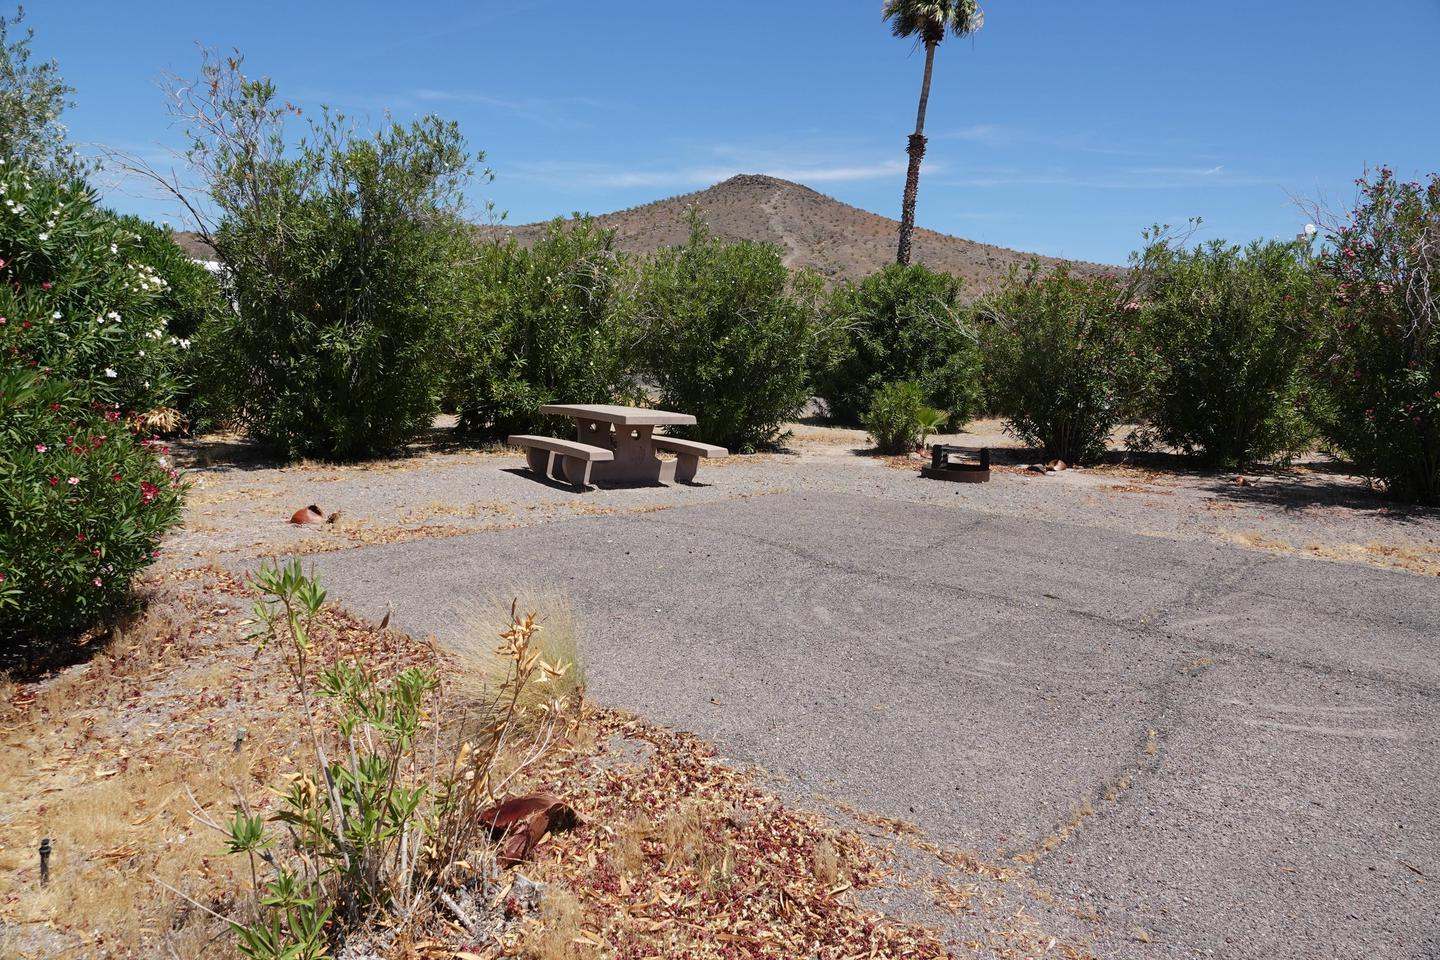 Campsite located in a desert setting1Callville Bay Campground Site 8